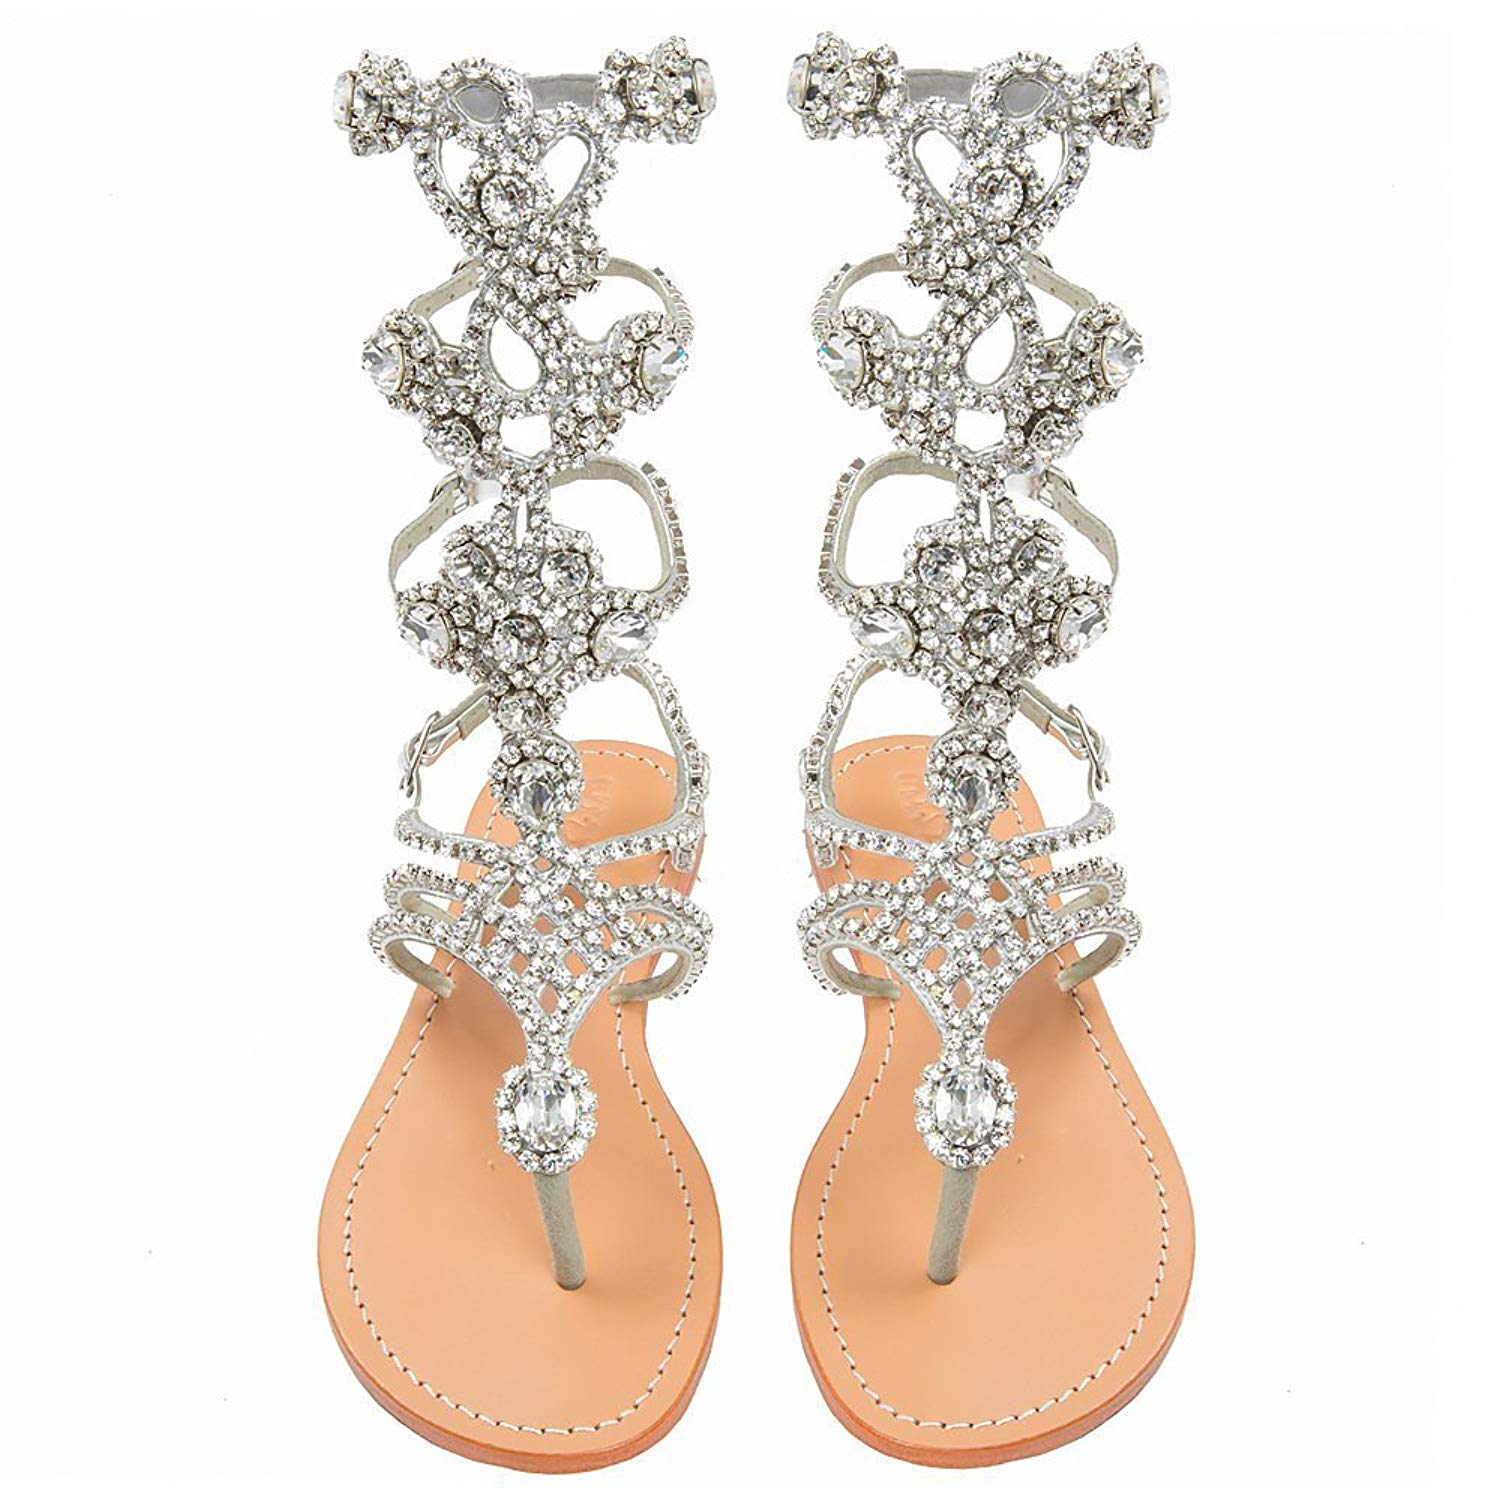 3a77a0ecc5489 Get Quotations · Mystique Original Genuine Leather Handmade Women s Silver  Jeweled   Embellished Crystal Gladiator Sandals